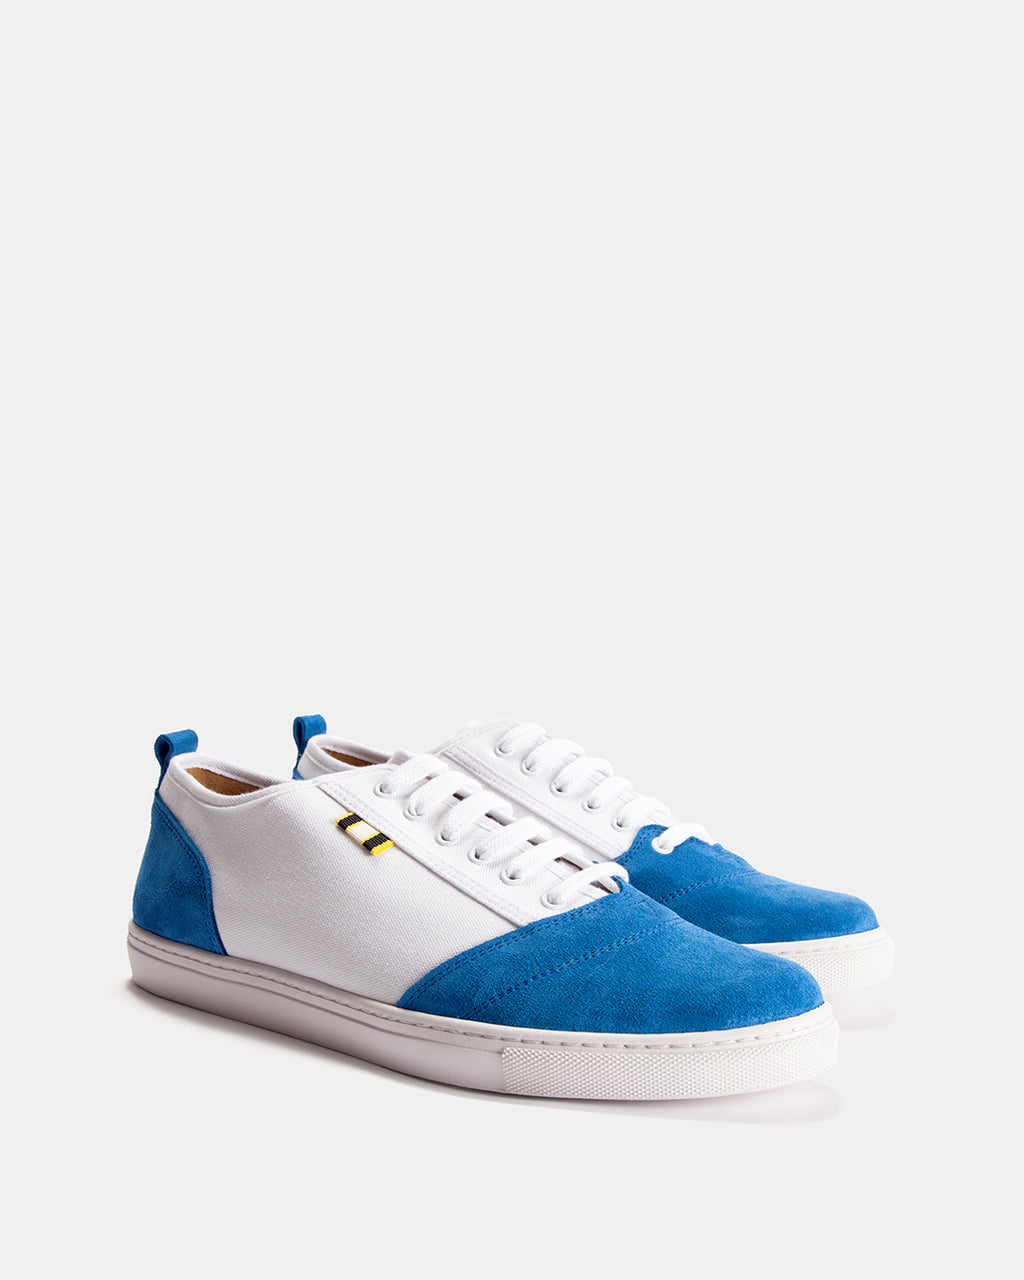 APR001 - Suede & Canvas - Royal/White